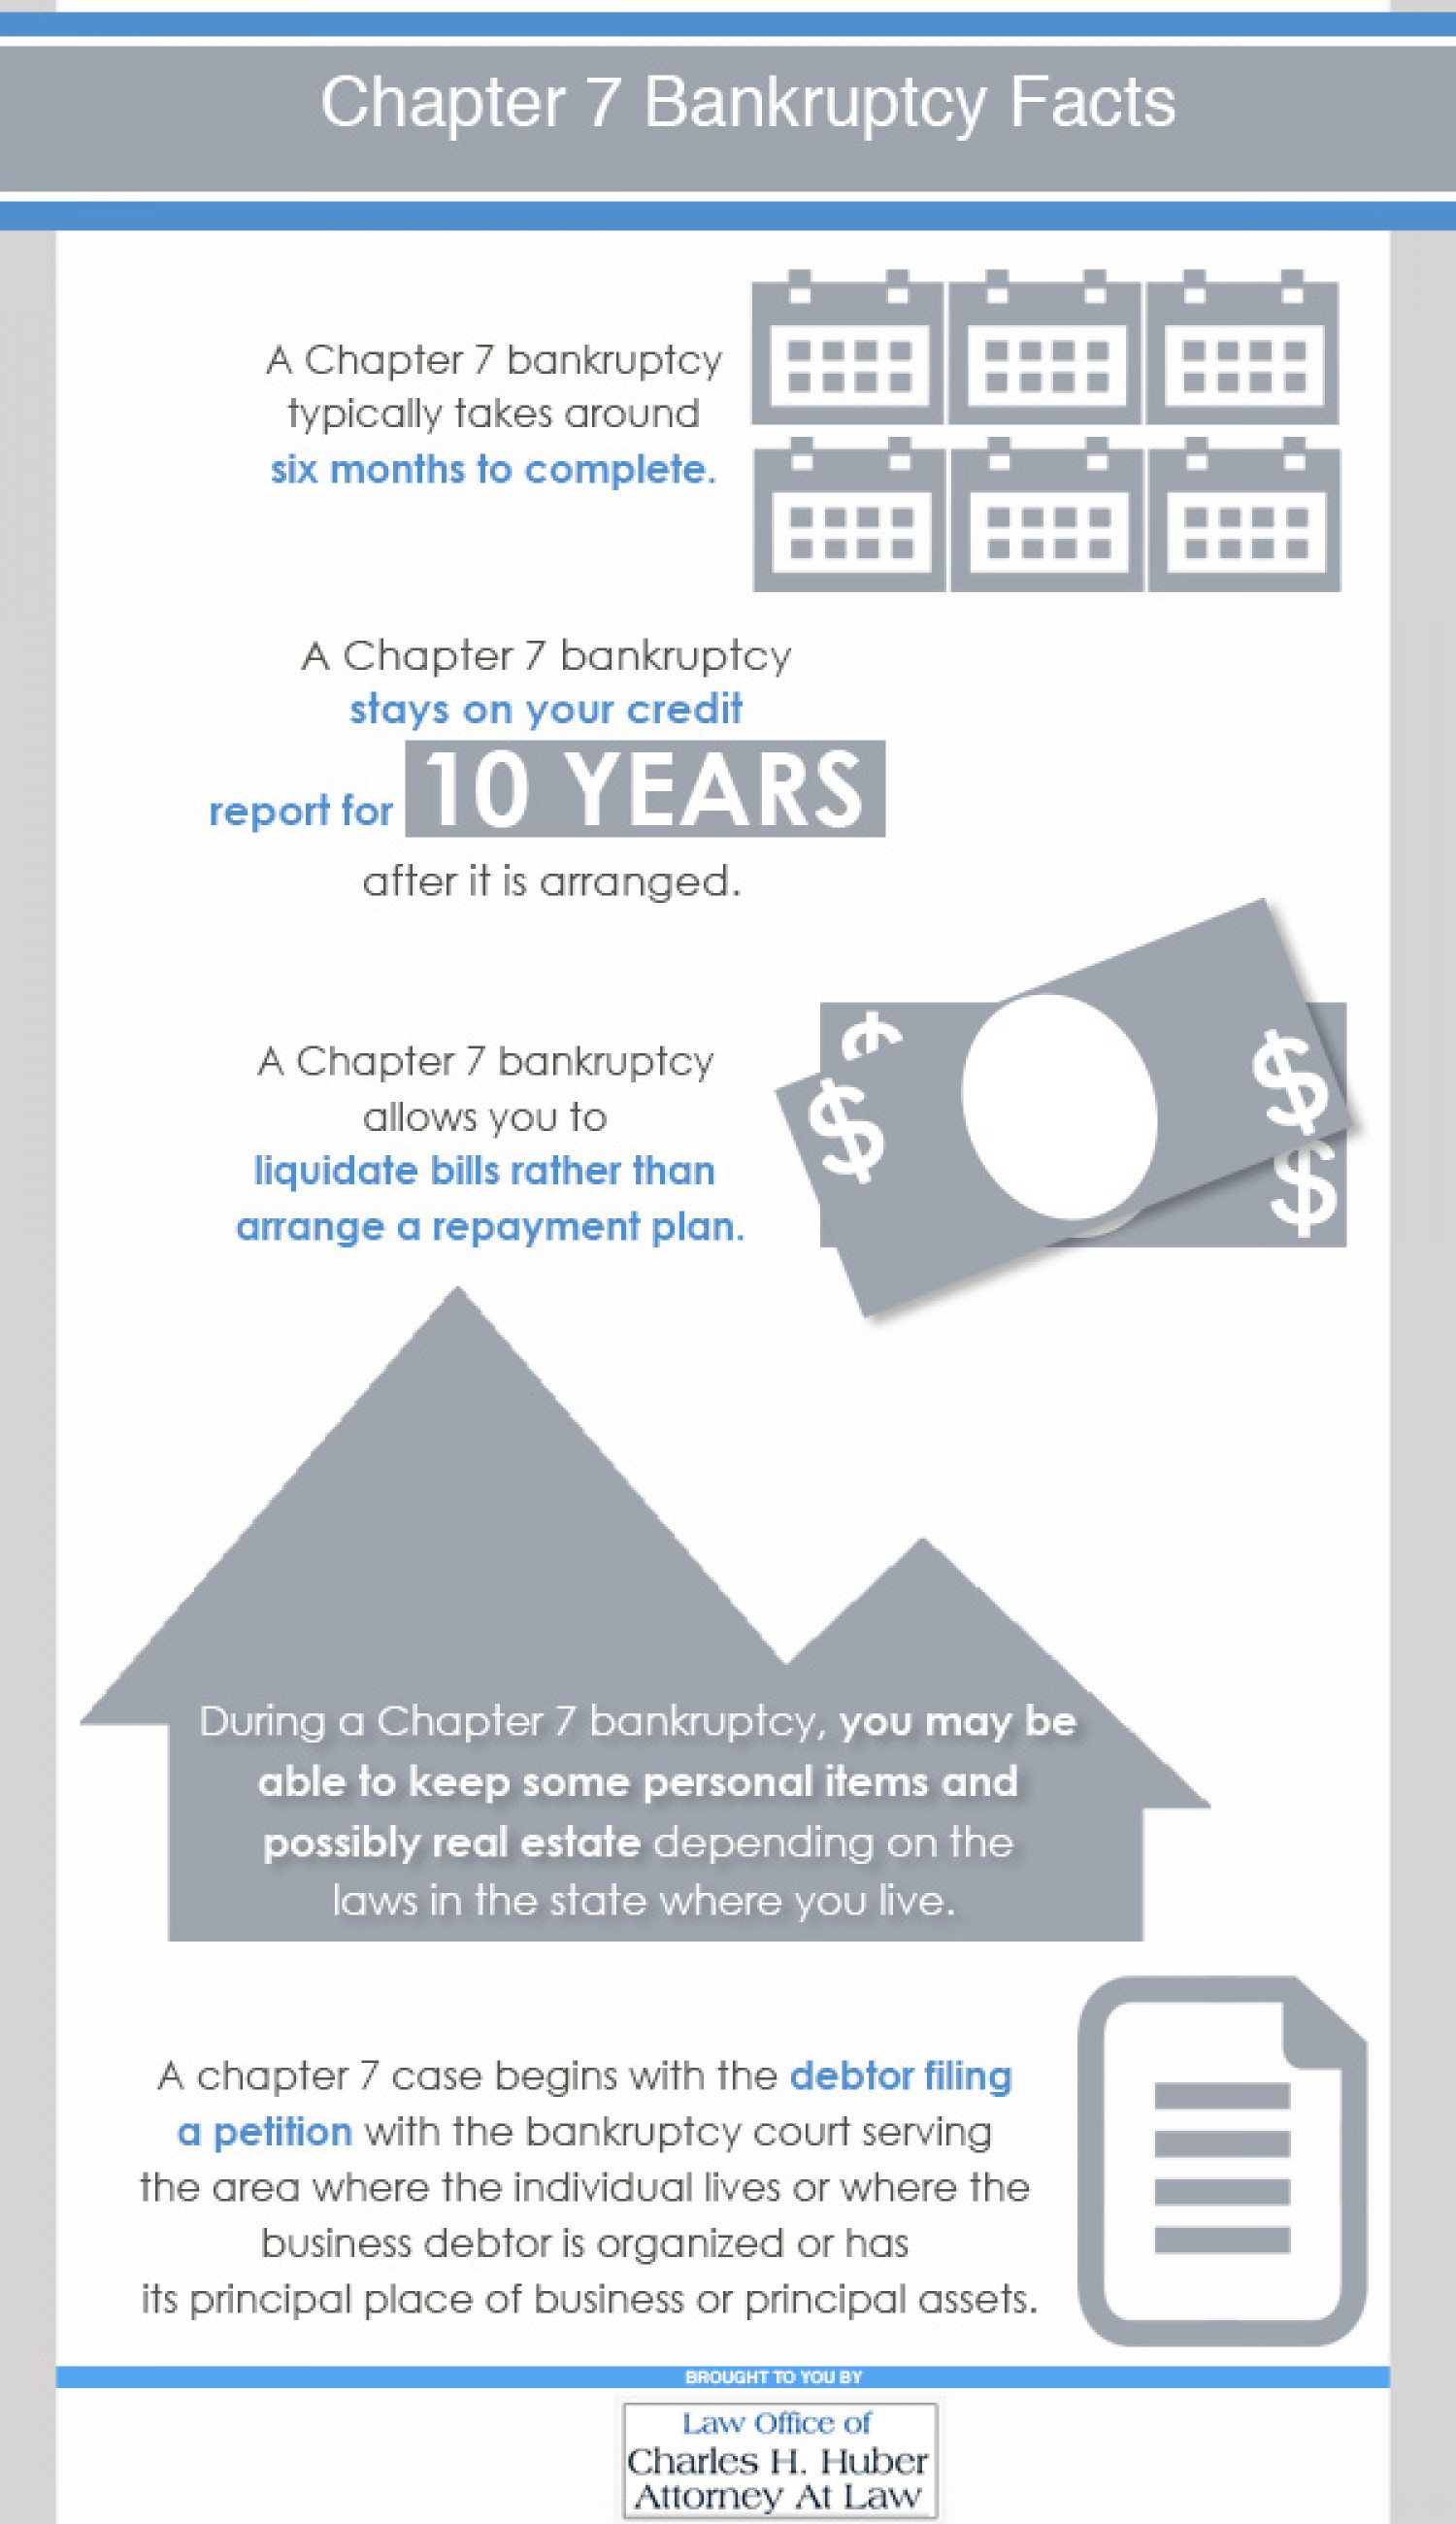 Chapter 7 Bankruptcy Facts Infographic